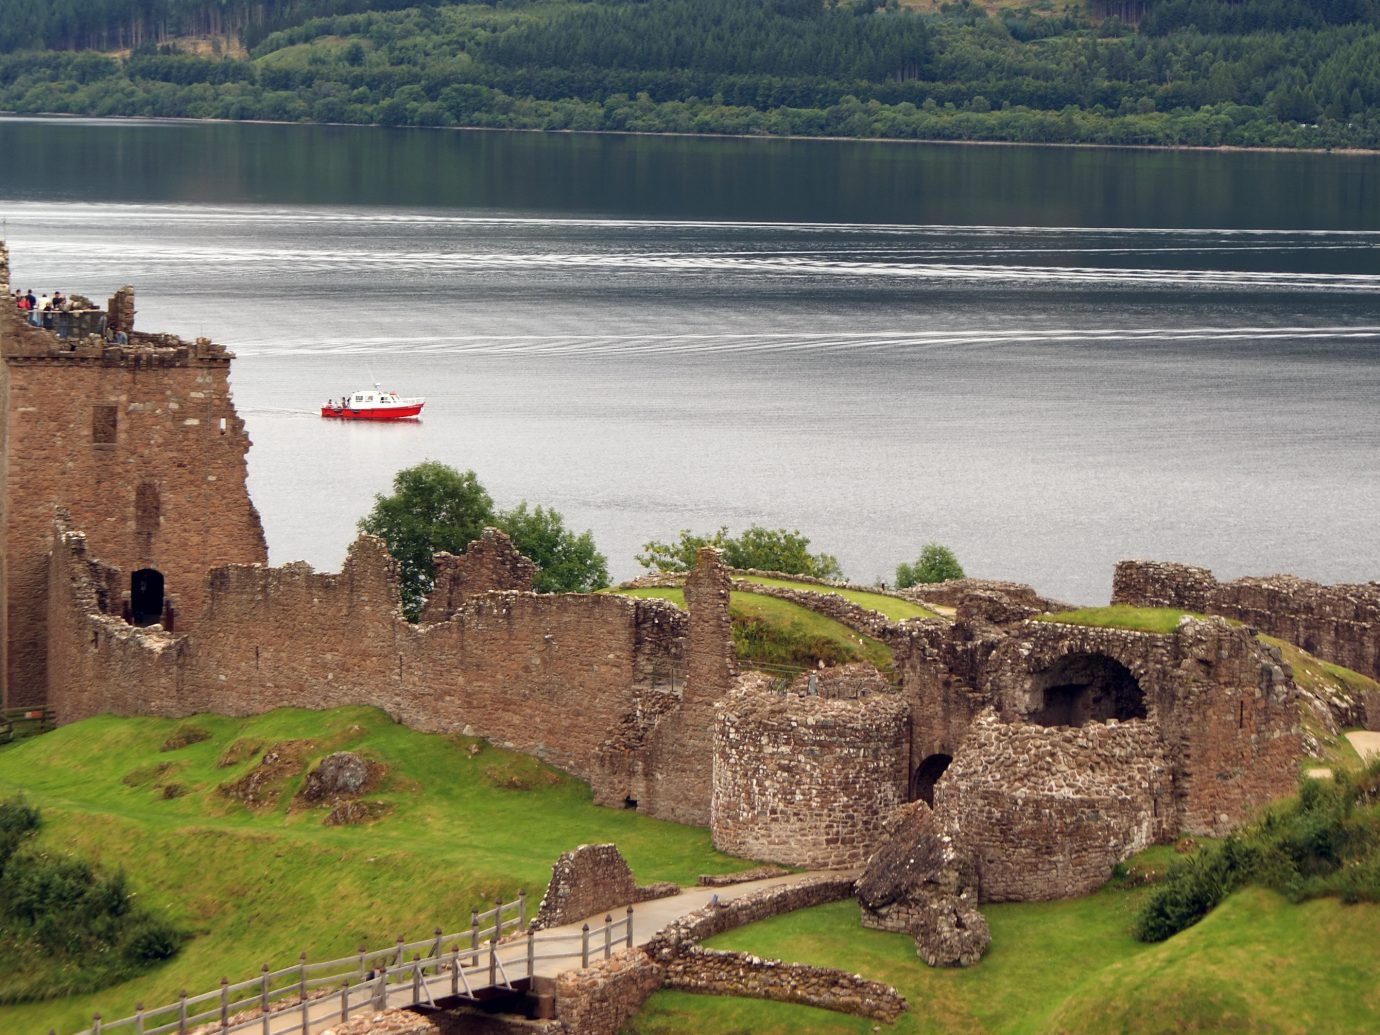 Landmarks Offbeat grass outdoor rock loch highland fortification reservoir Nature mountain sky stone castle building tree landscape Coast Lake water River bank old cliff